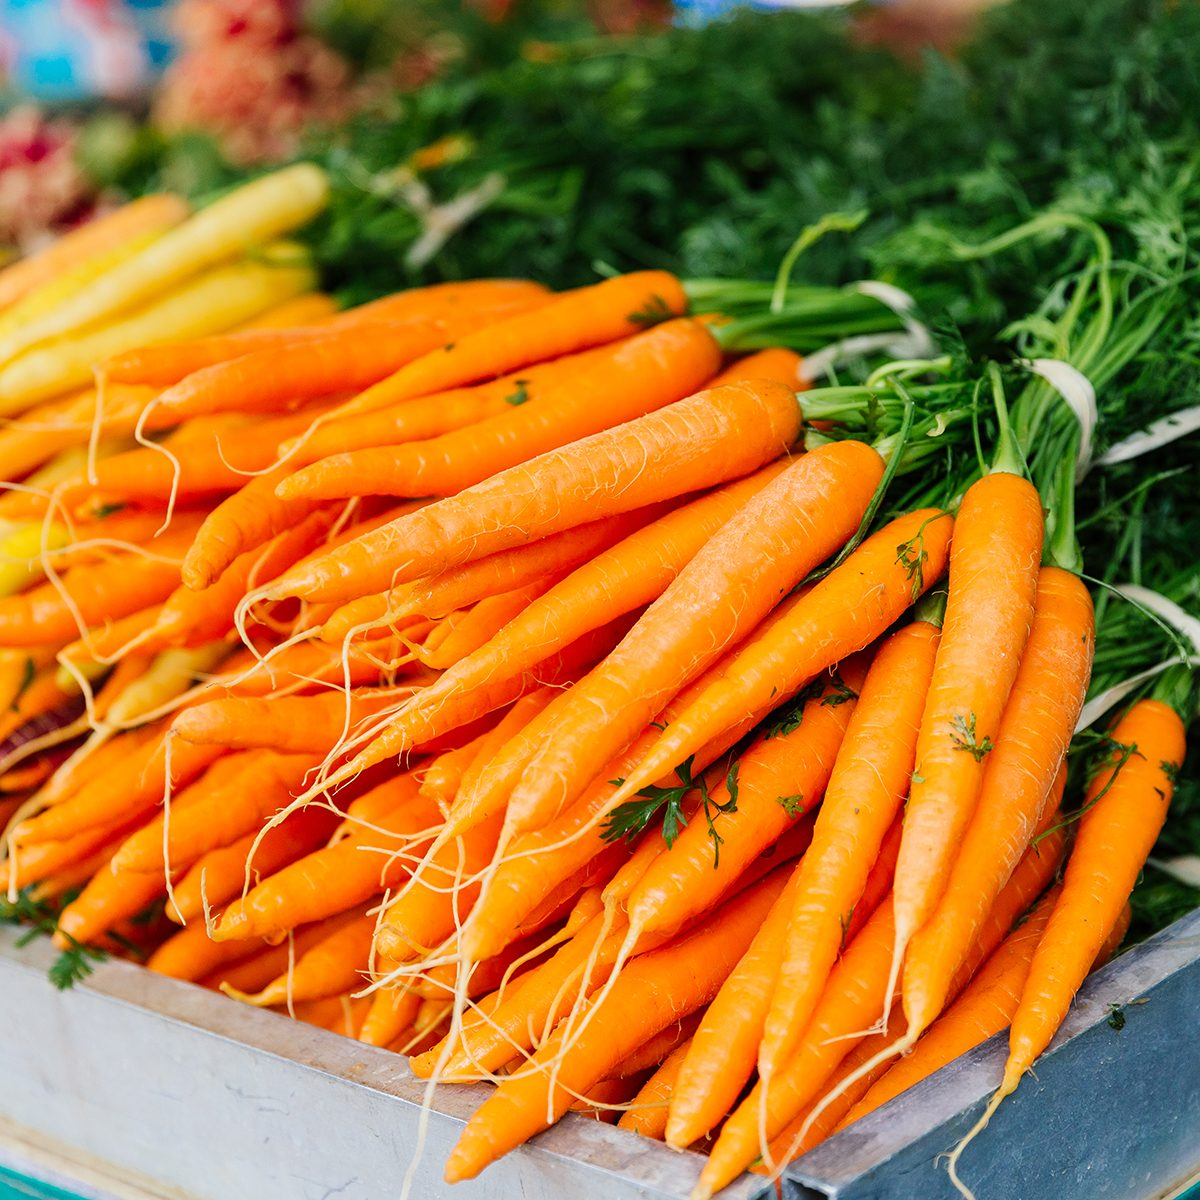 Fresh carrot on the market stall at the farmer's market